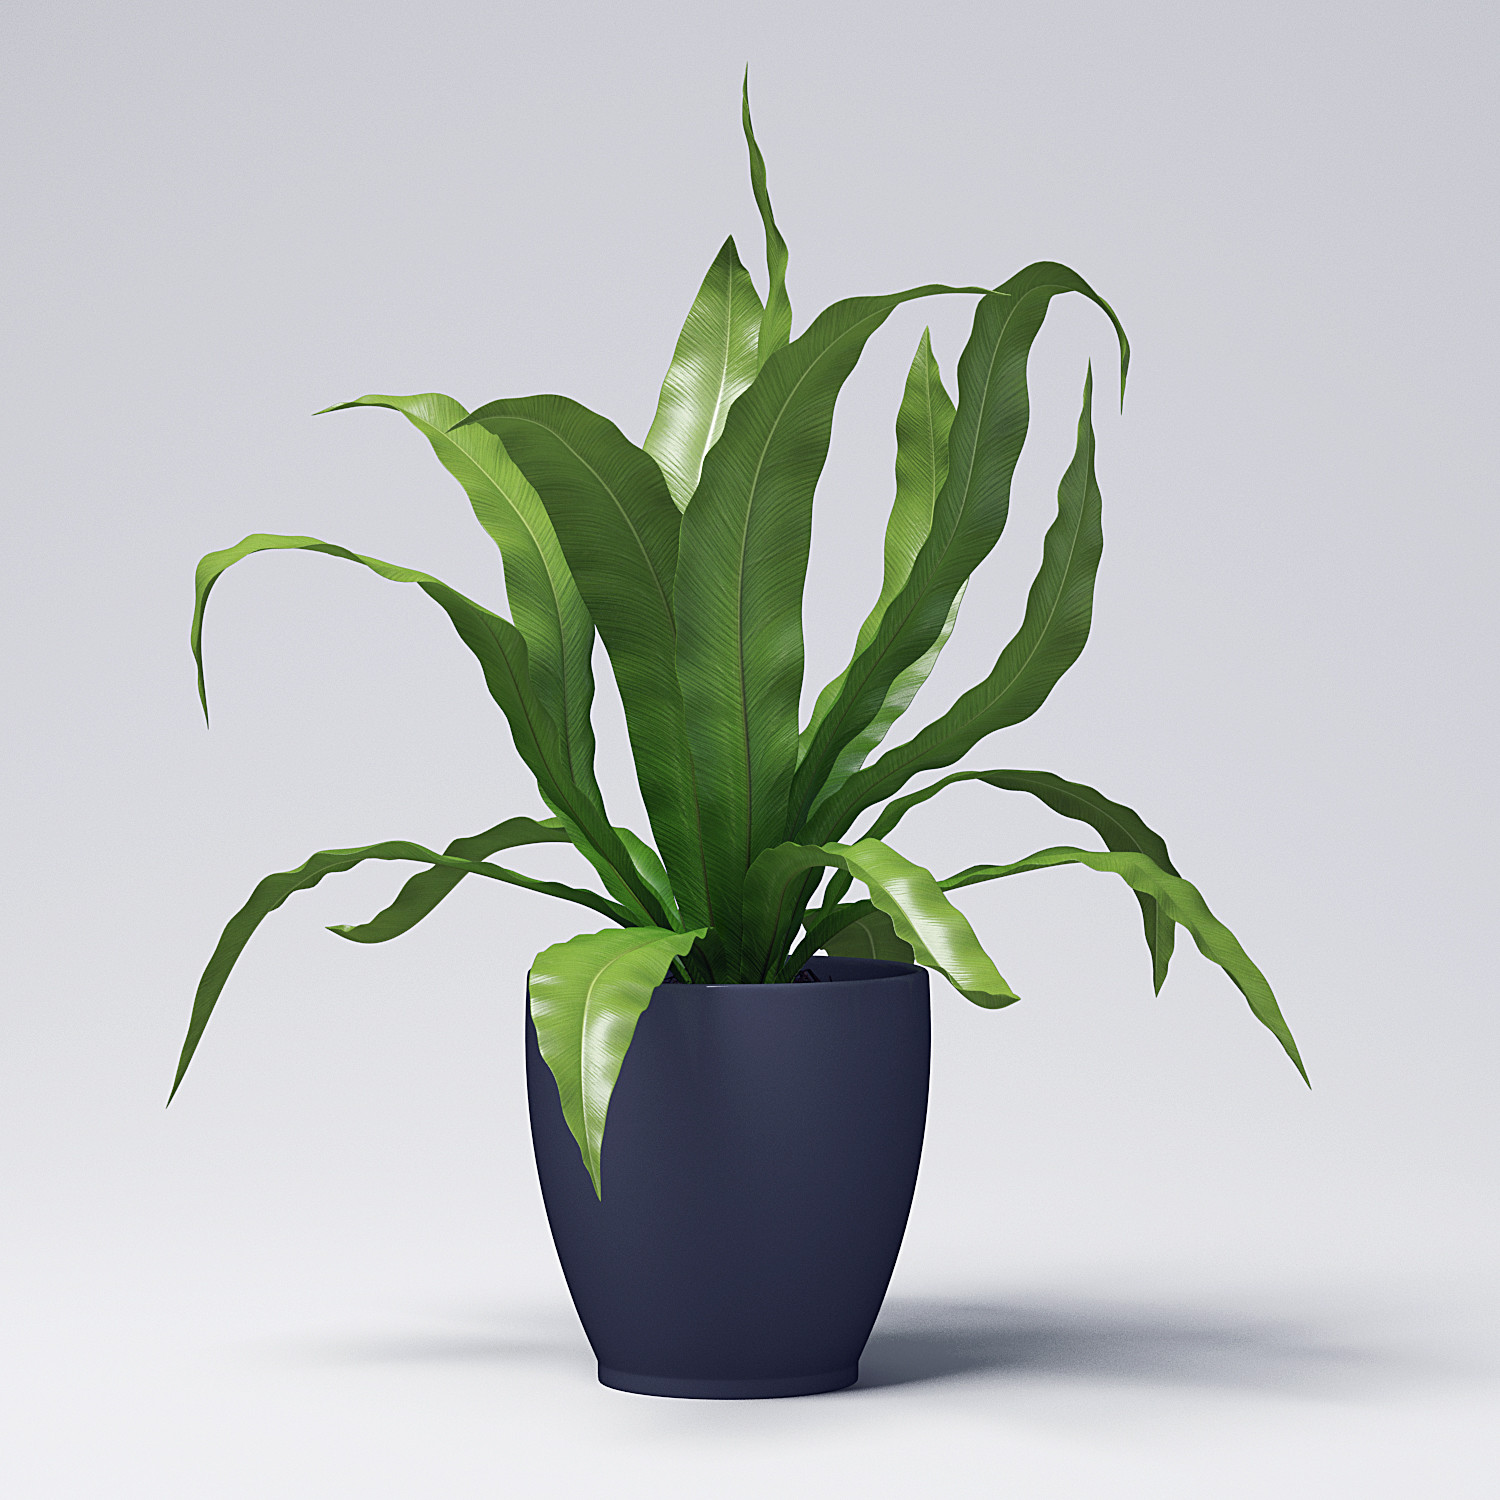 Svizze 3D Art - Plant 3D Model